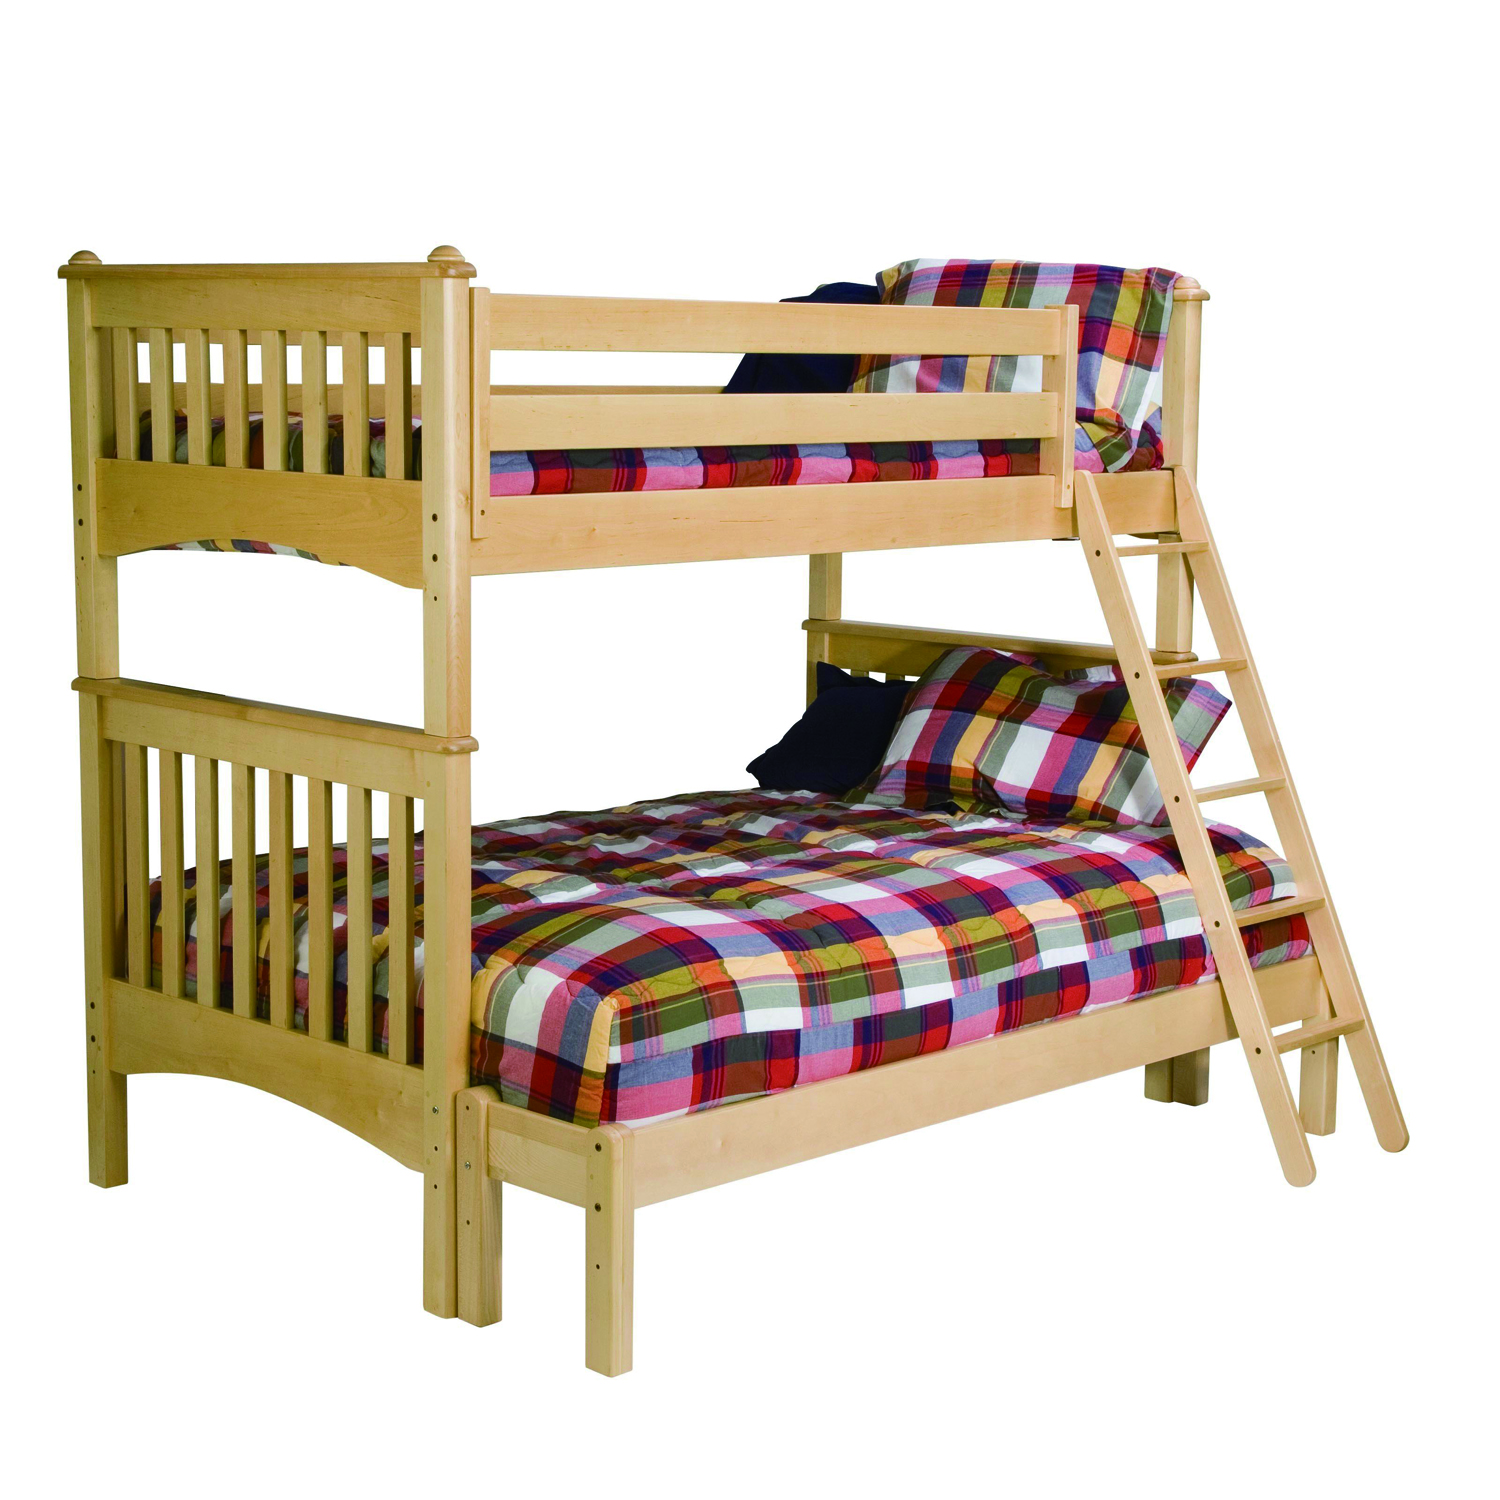 Picture of: Cheap Sale Yellow Wooden Bunk Beds For Kids With Drawer And Ladder Buy Child Bed With Storage Colorful Child Bunk Bed Child Cot Bed Product On Alibaba Com